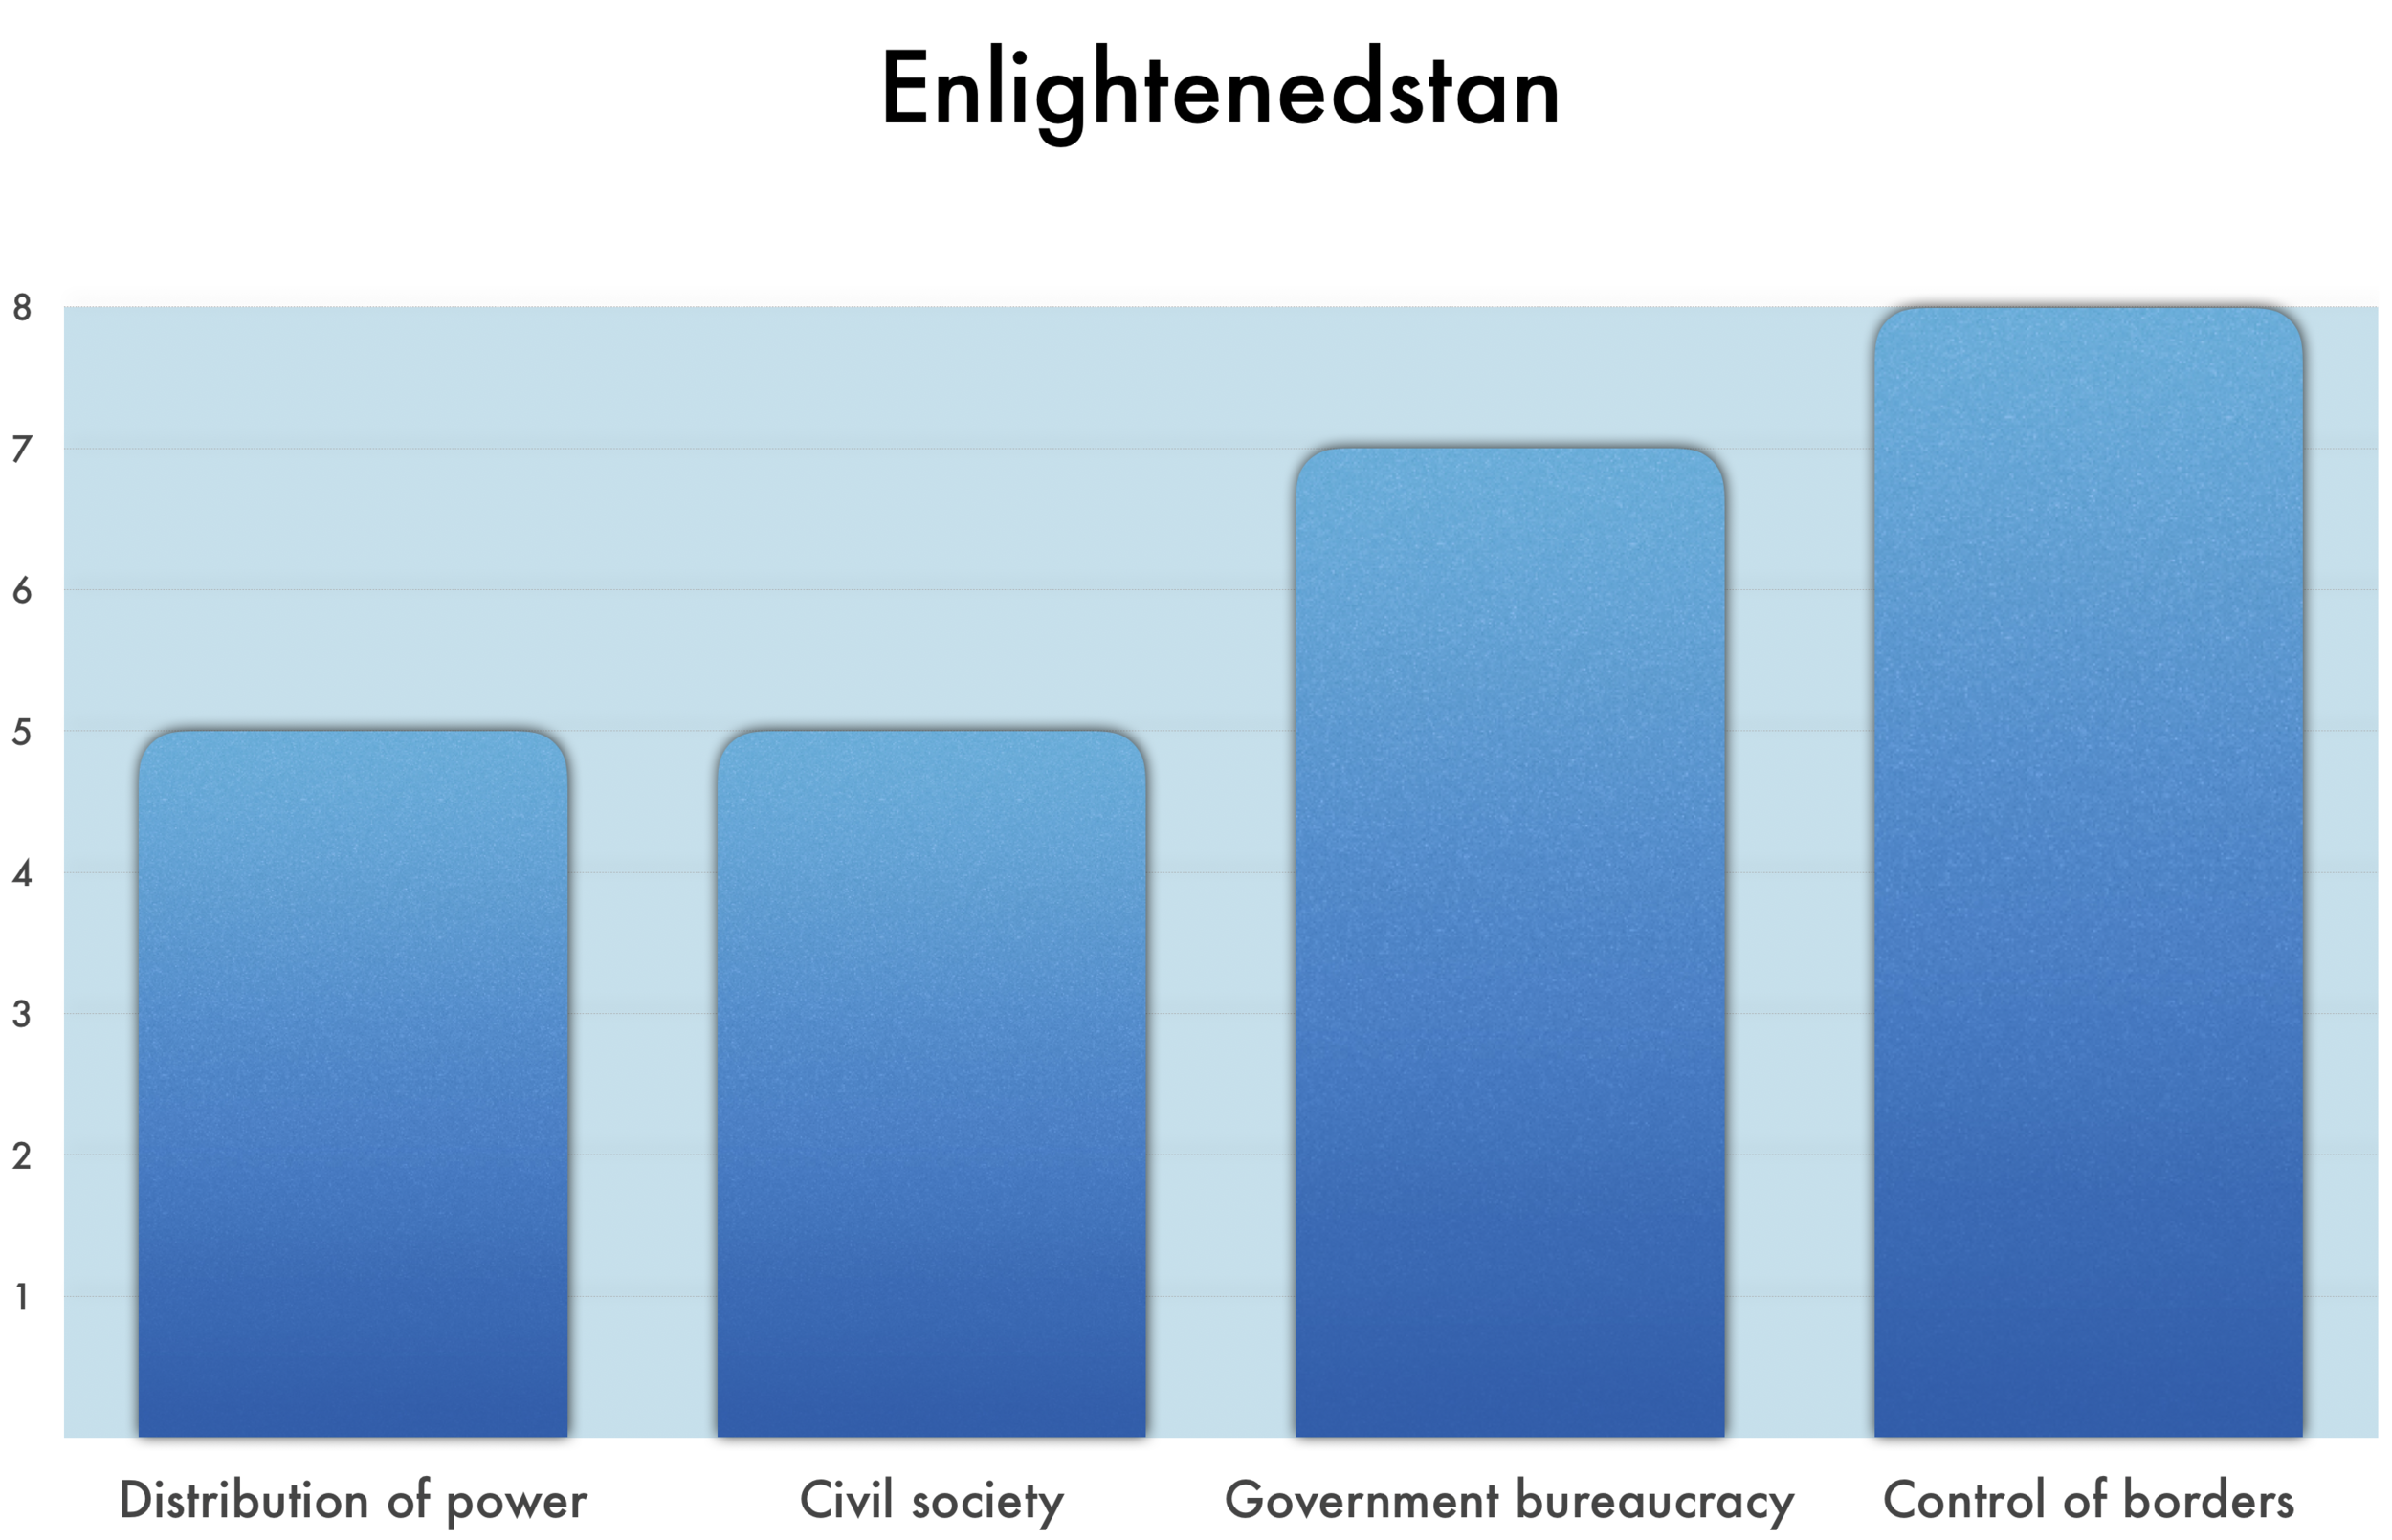 As seen above,  Enlightenedstan  ranks  5  in Distribution of Power,  5  in Civil Society,  7  in Government bureaucracy, and  8  in Control of borders.  •5 in Distribution of power indicates an emerging democracy, with a strong central state, rule of law, and democratic accountability. The institutionalization of the practice of democracy is not yet fully established and there is fear of return to rule by an elite.  •5 in Civil society indicates many independent civic associations, with freedom to operate but weak capacity. Outside NGOs and funding are supplemental, not primary supports. •7 in Government bureaucracy indicates the national governmental bureaucracy is integrated into a regional governmental bureaucracy that is effective and efficient, with low corruption. •8 in Control of borders indicates the country is able to protect its society from most unwanted cultural foreign influences.